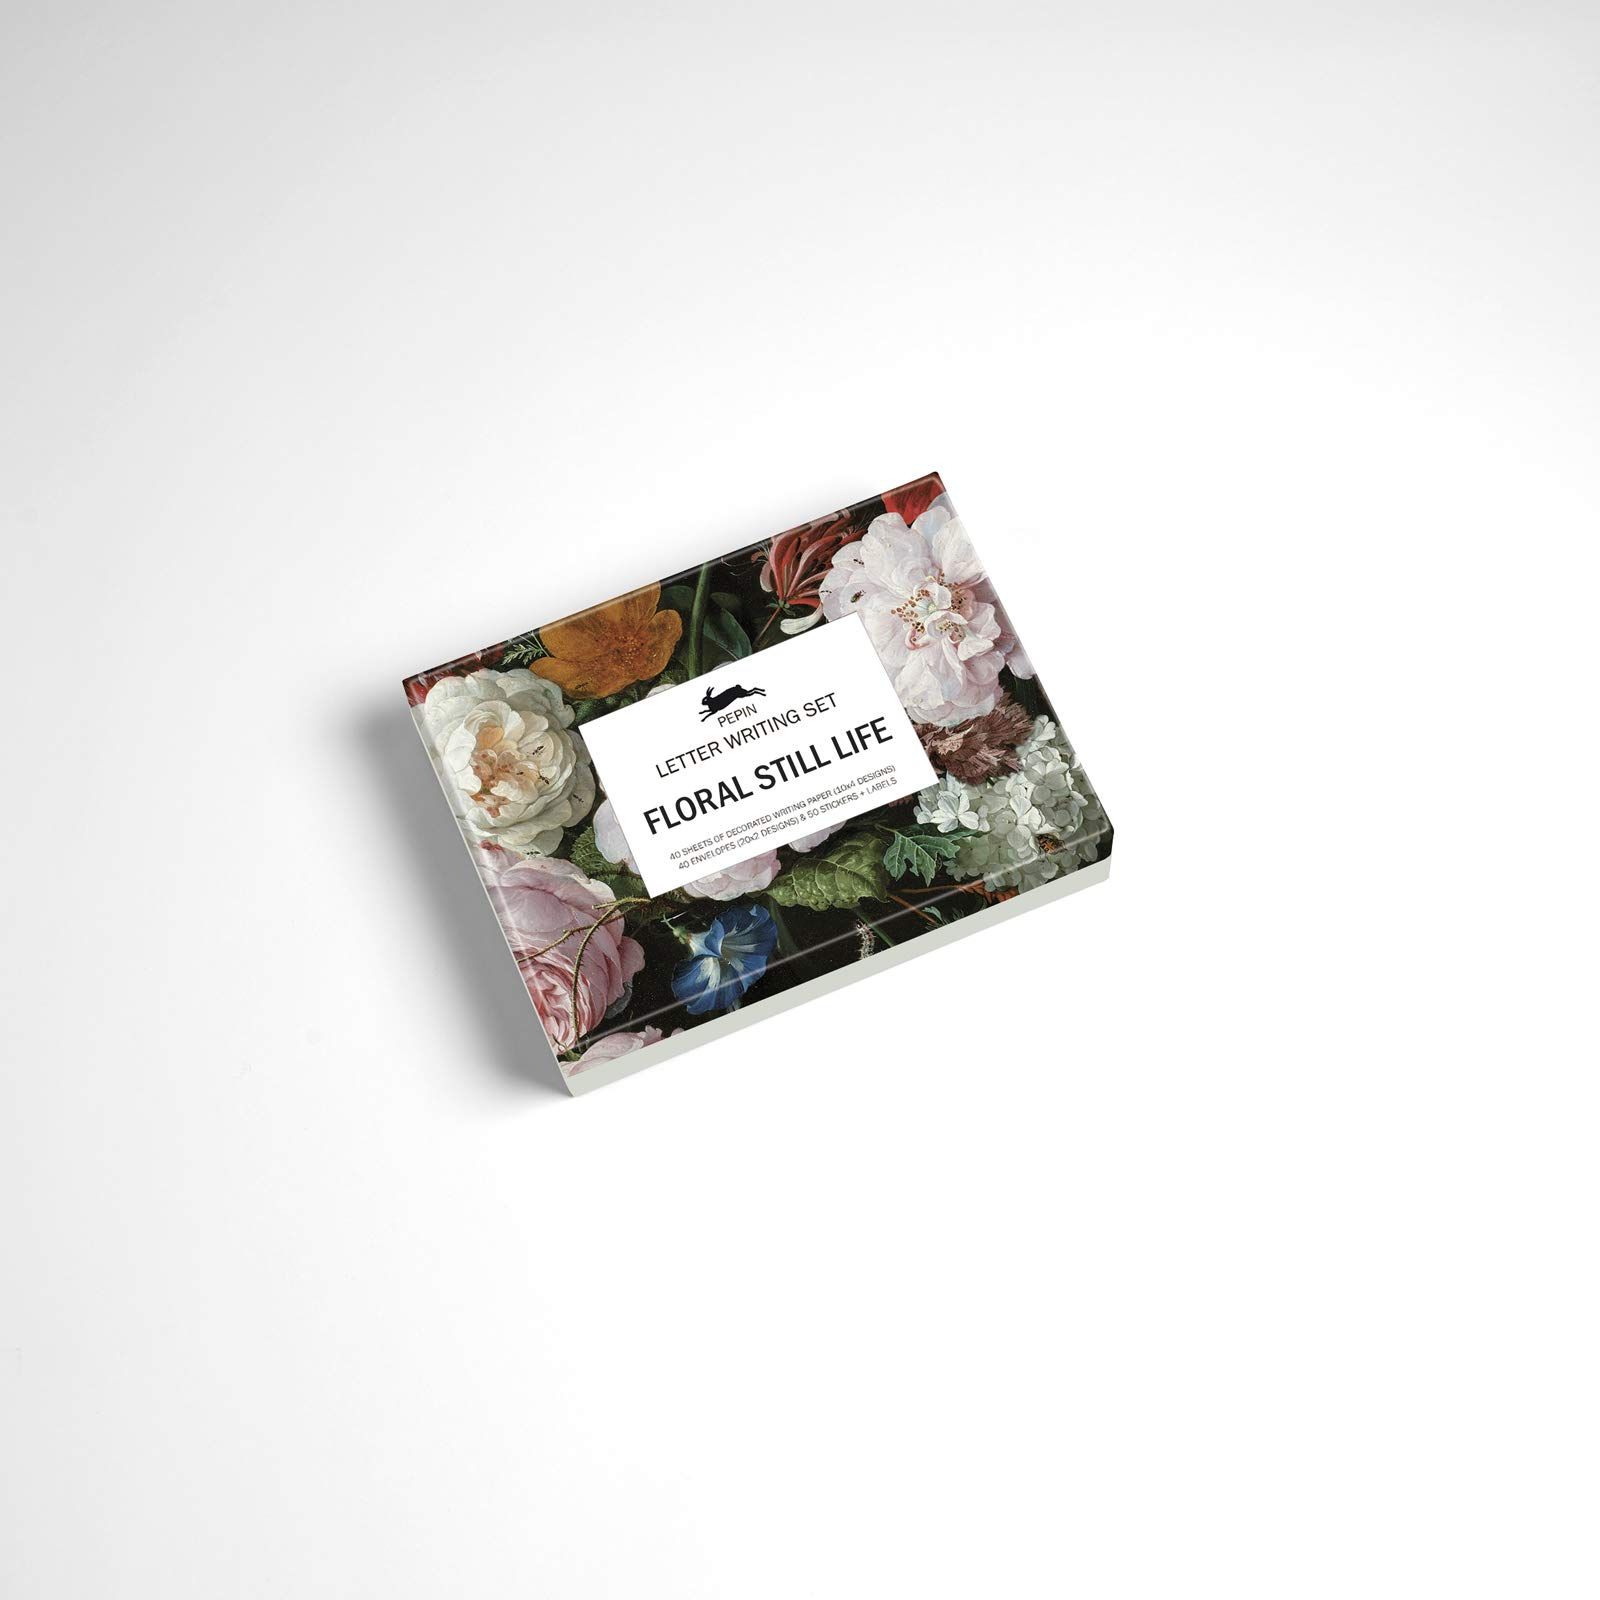 Floral Still Life: Letter Writing Set (Multilingual Edition)